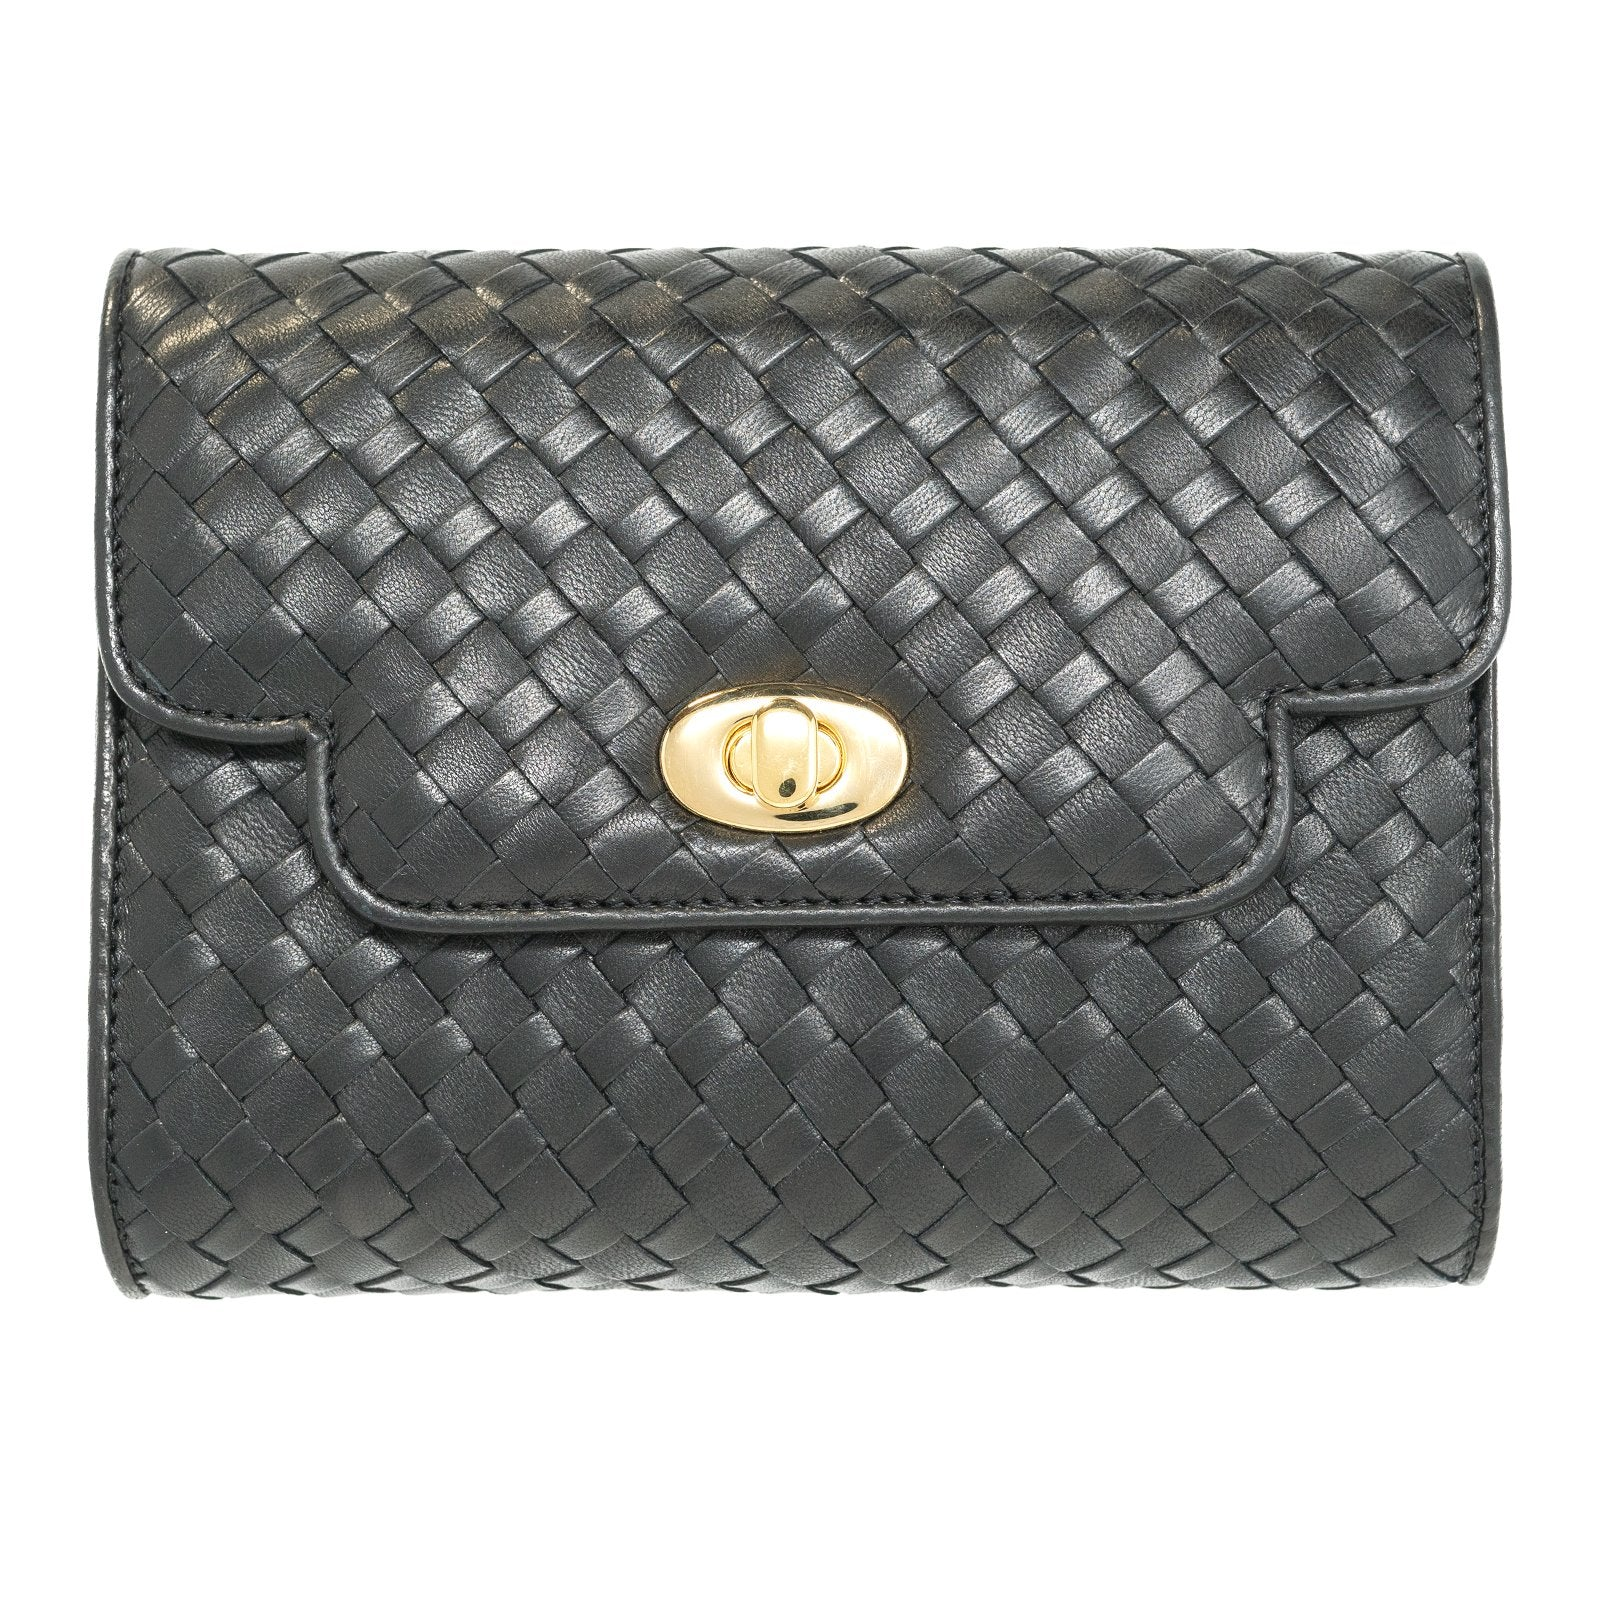 Women Intrecciato Leather Soft Clutch Black Quadro - Jennifer Tattanelli